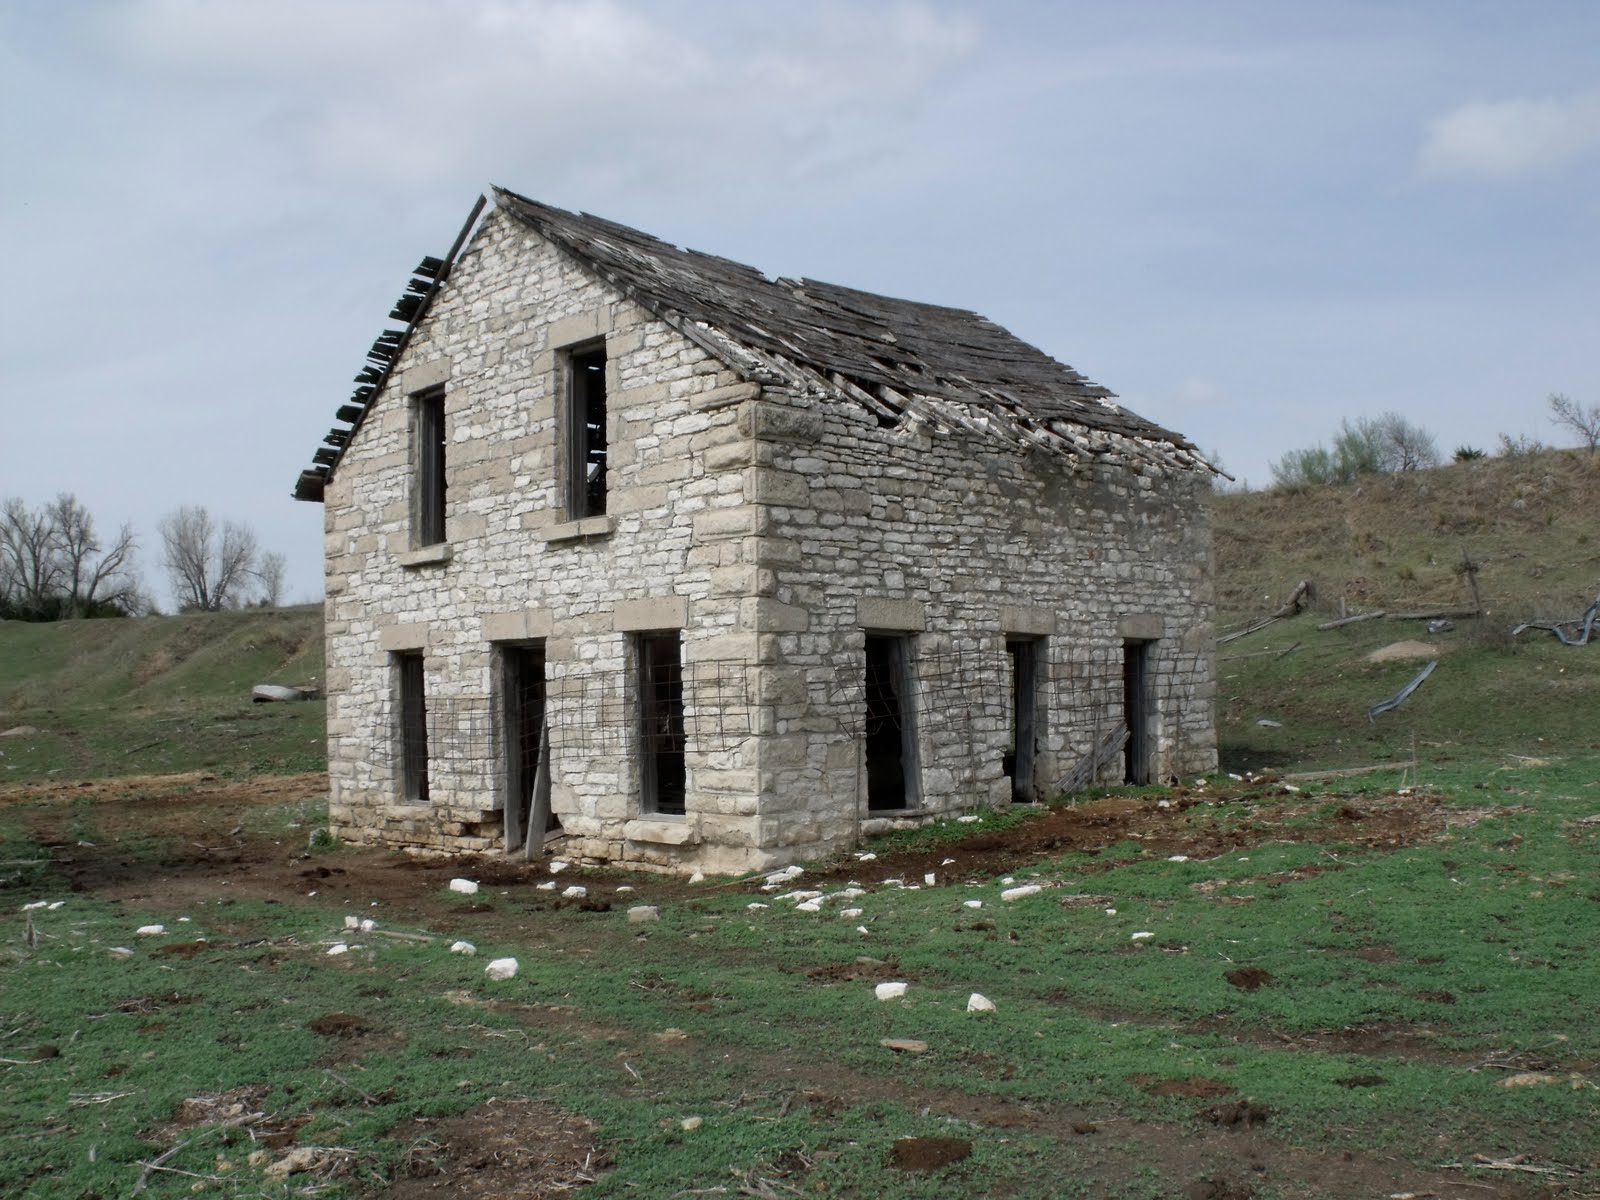 Heritage nebraska fading places the old stone house rural harlan county ne Strona house